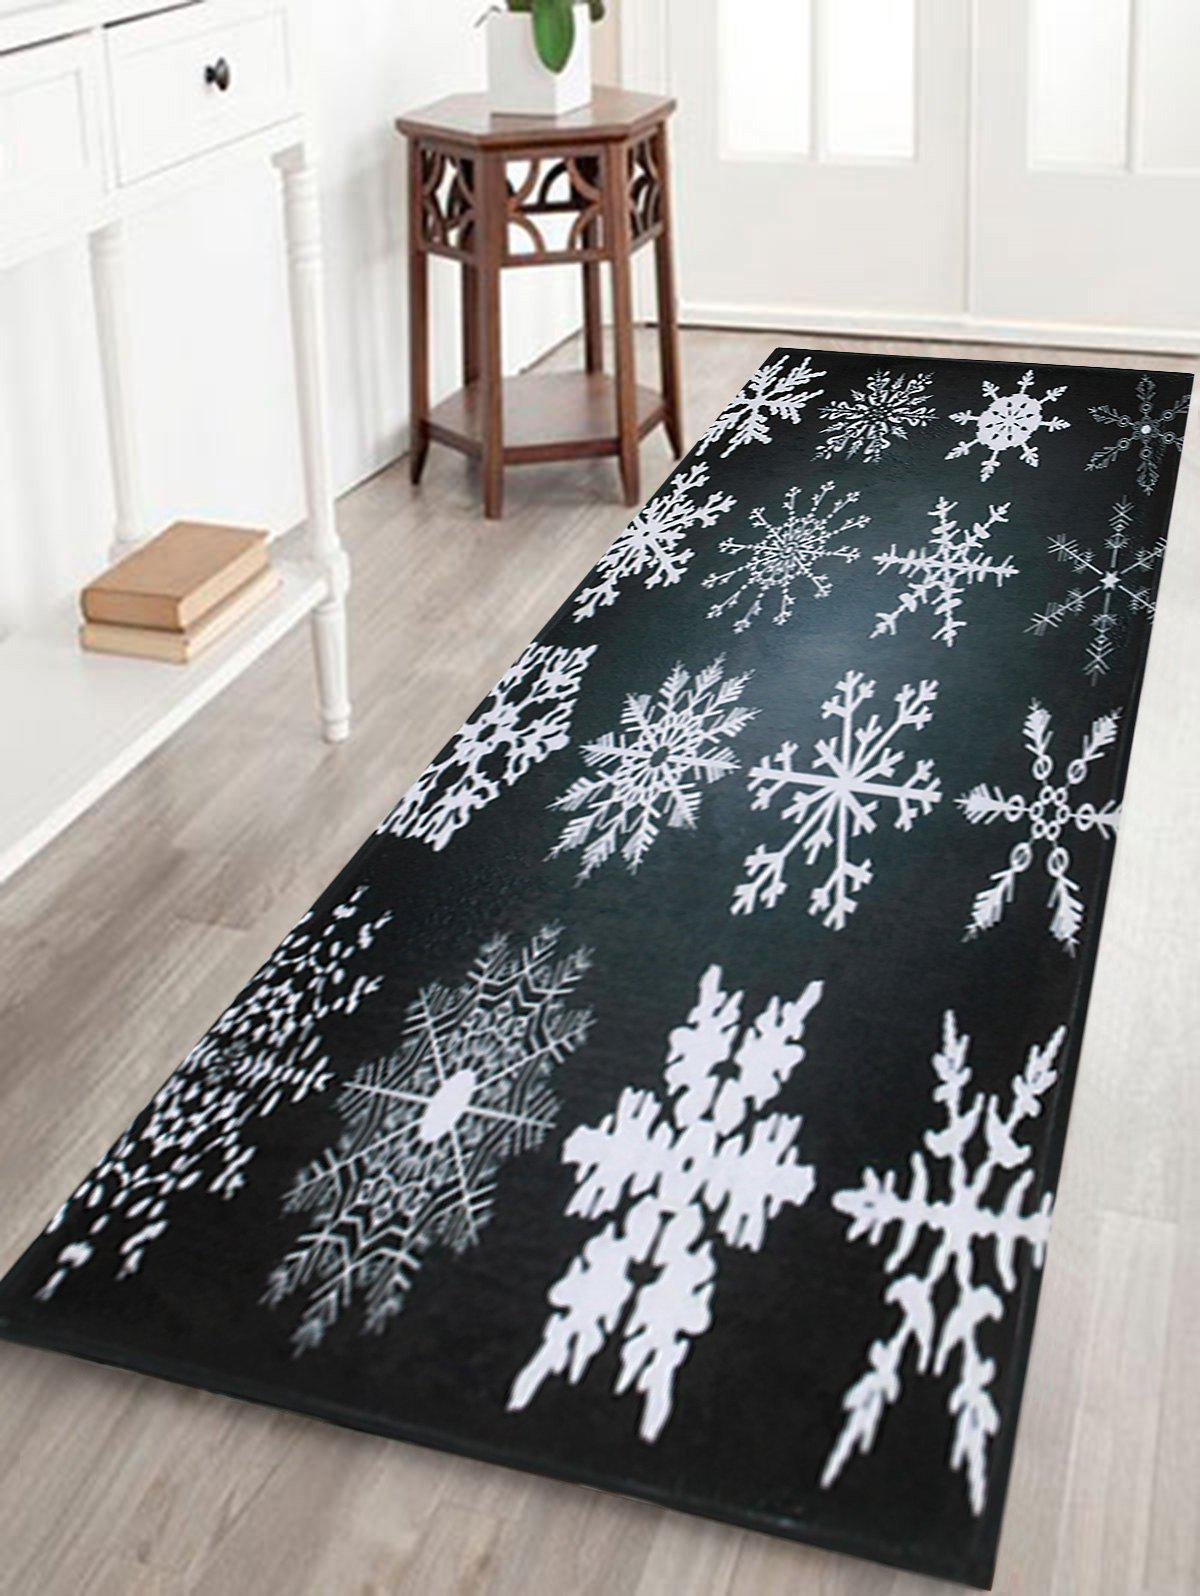 Christmas Snowflake Nonslip Coral Fleece Area RugHOME<br><br>Size: W16 INCH * L47 INCH; Color: BLACK GREY; Products Type: Bath rugs; Materials: Coral FLeece; Pattern: Snowflake; Style: Festival; Shape: Rectangular; Package Contents: 1 x Rug;